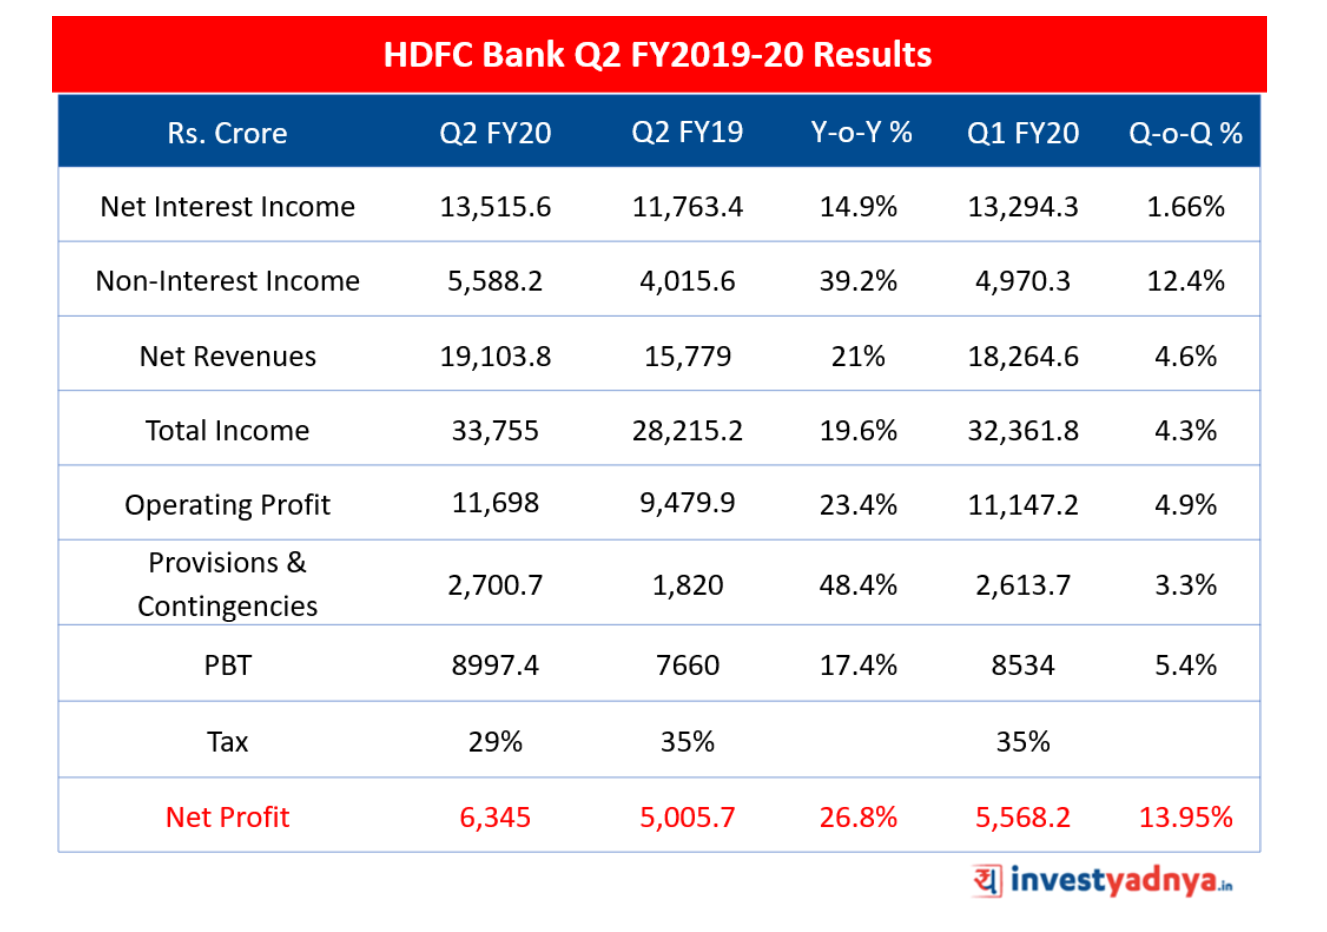 HDFC Bank Q2 FY2019-20 Results